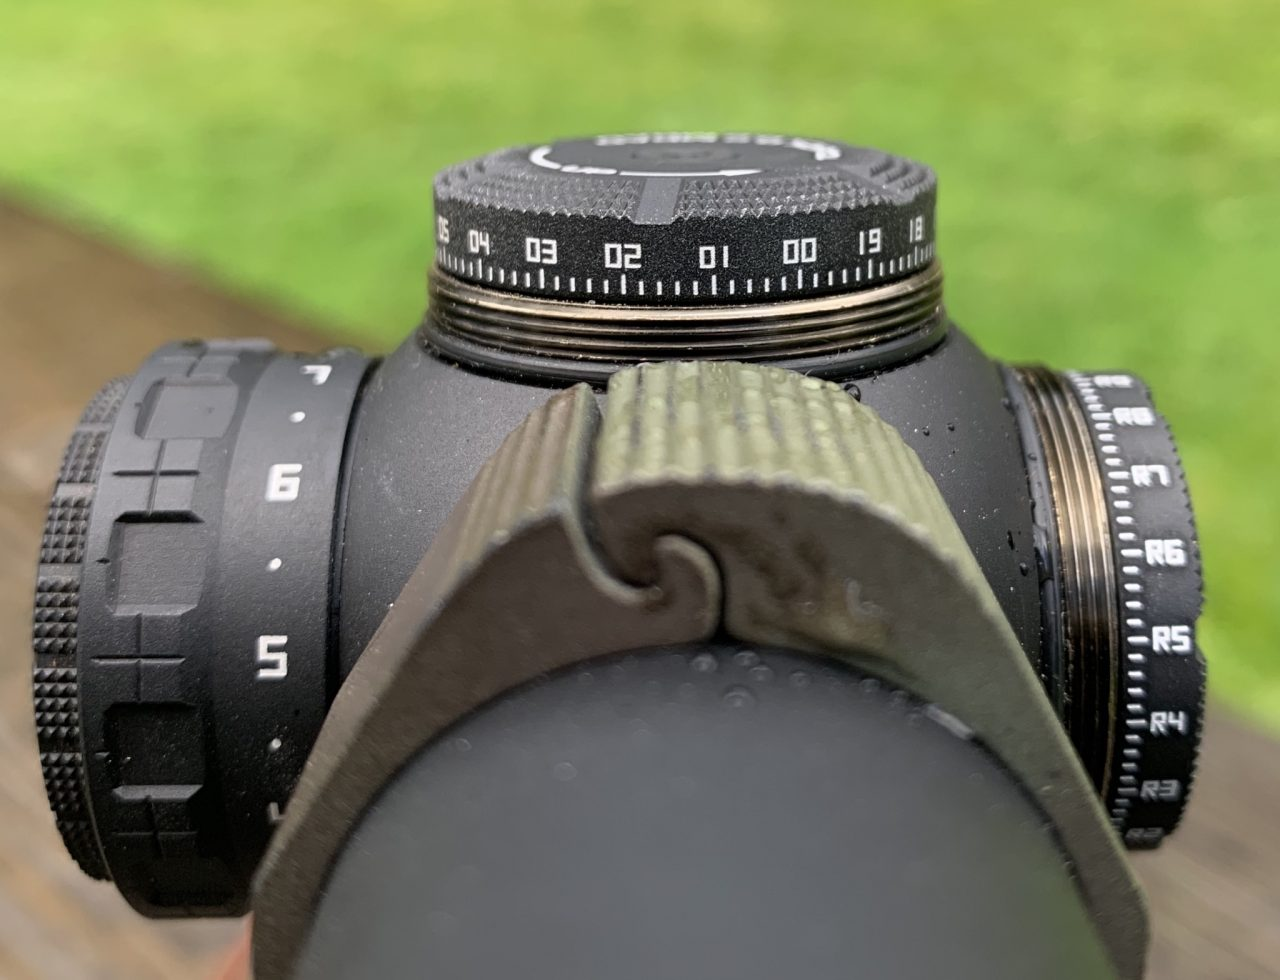 .2 mrad clicks and an off position between each illumination setting